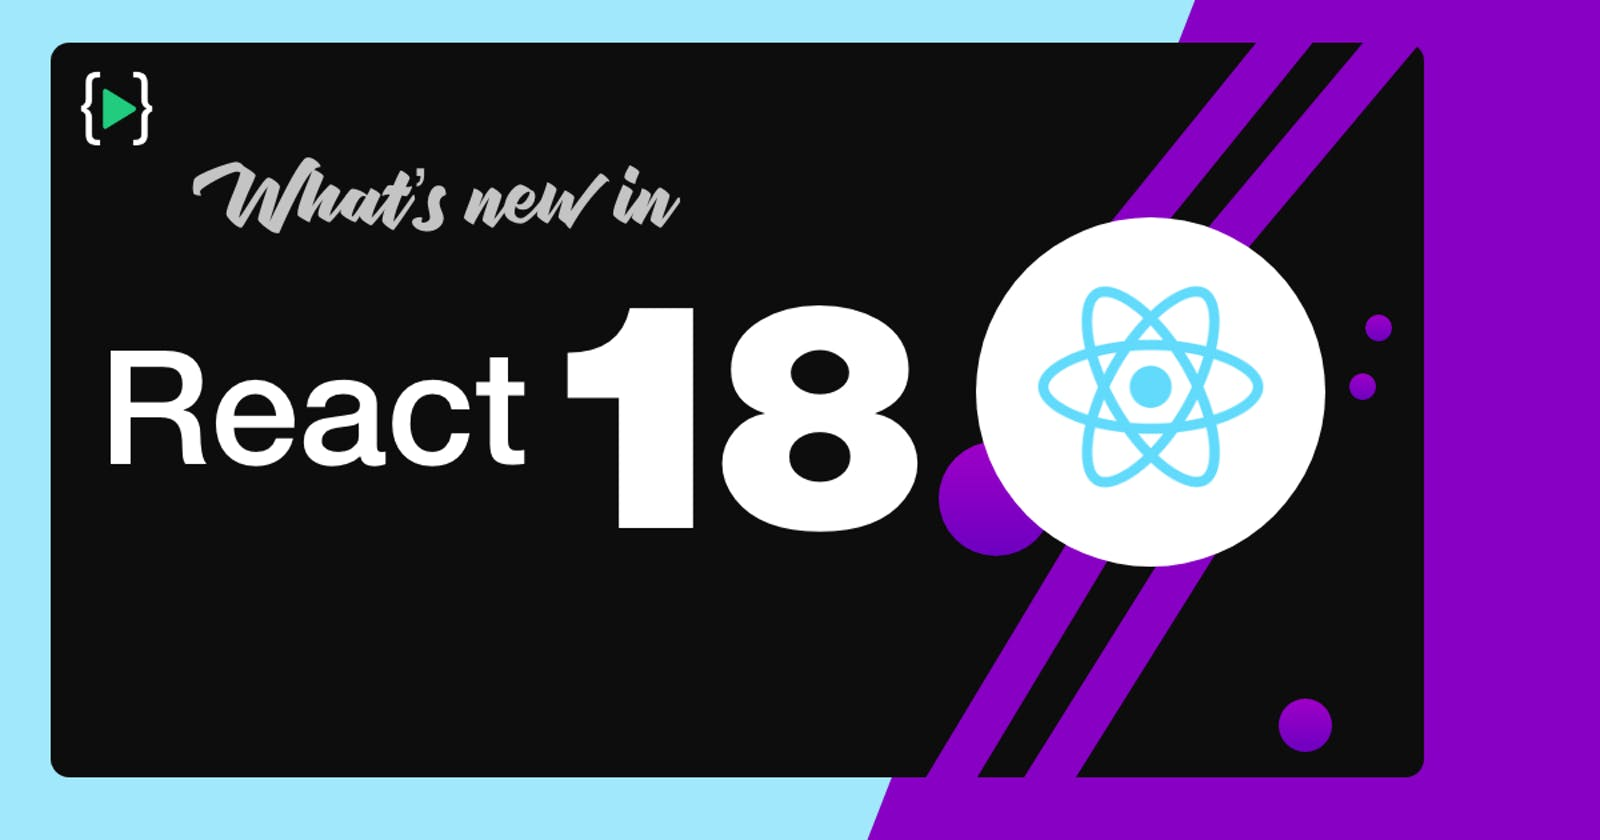 What's new in react 18?